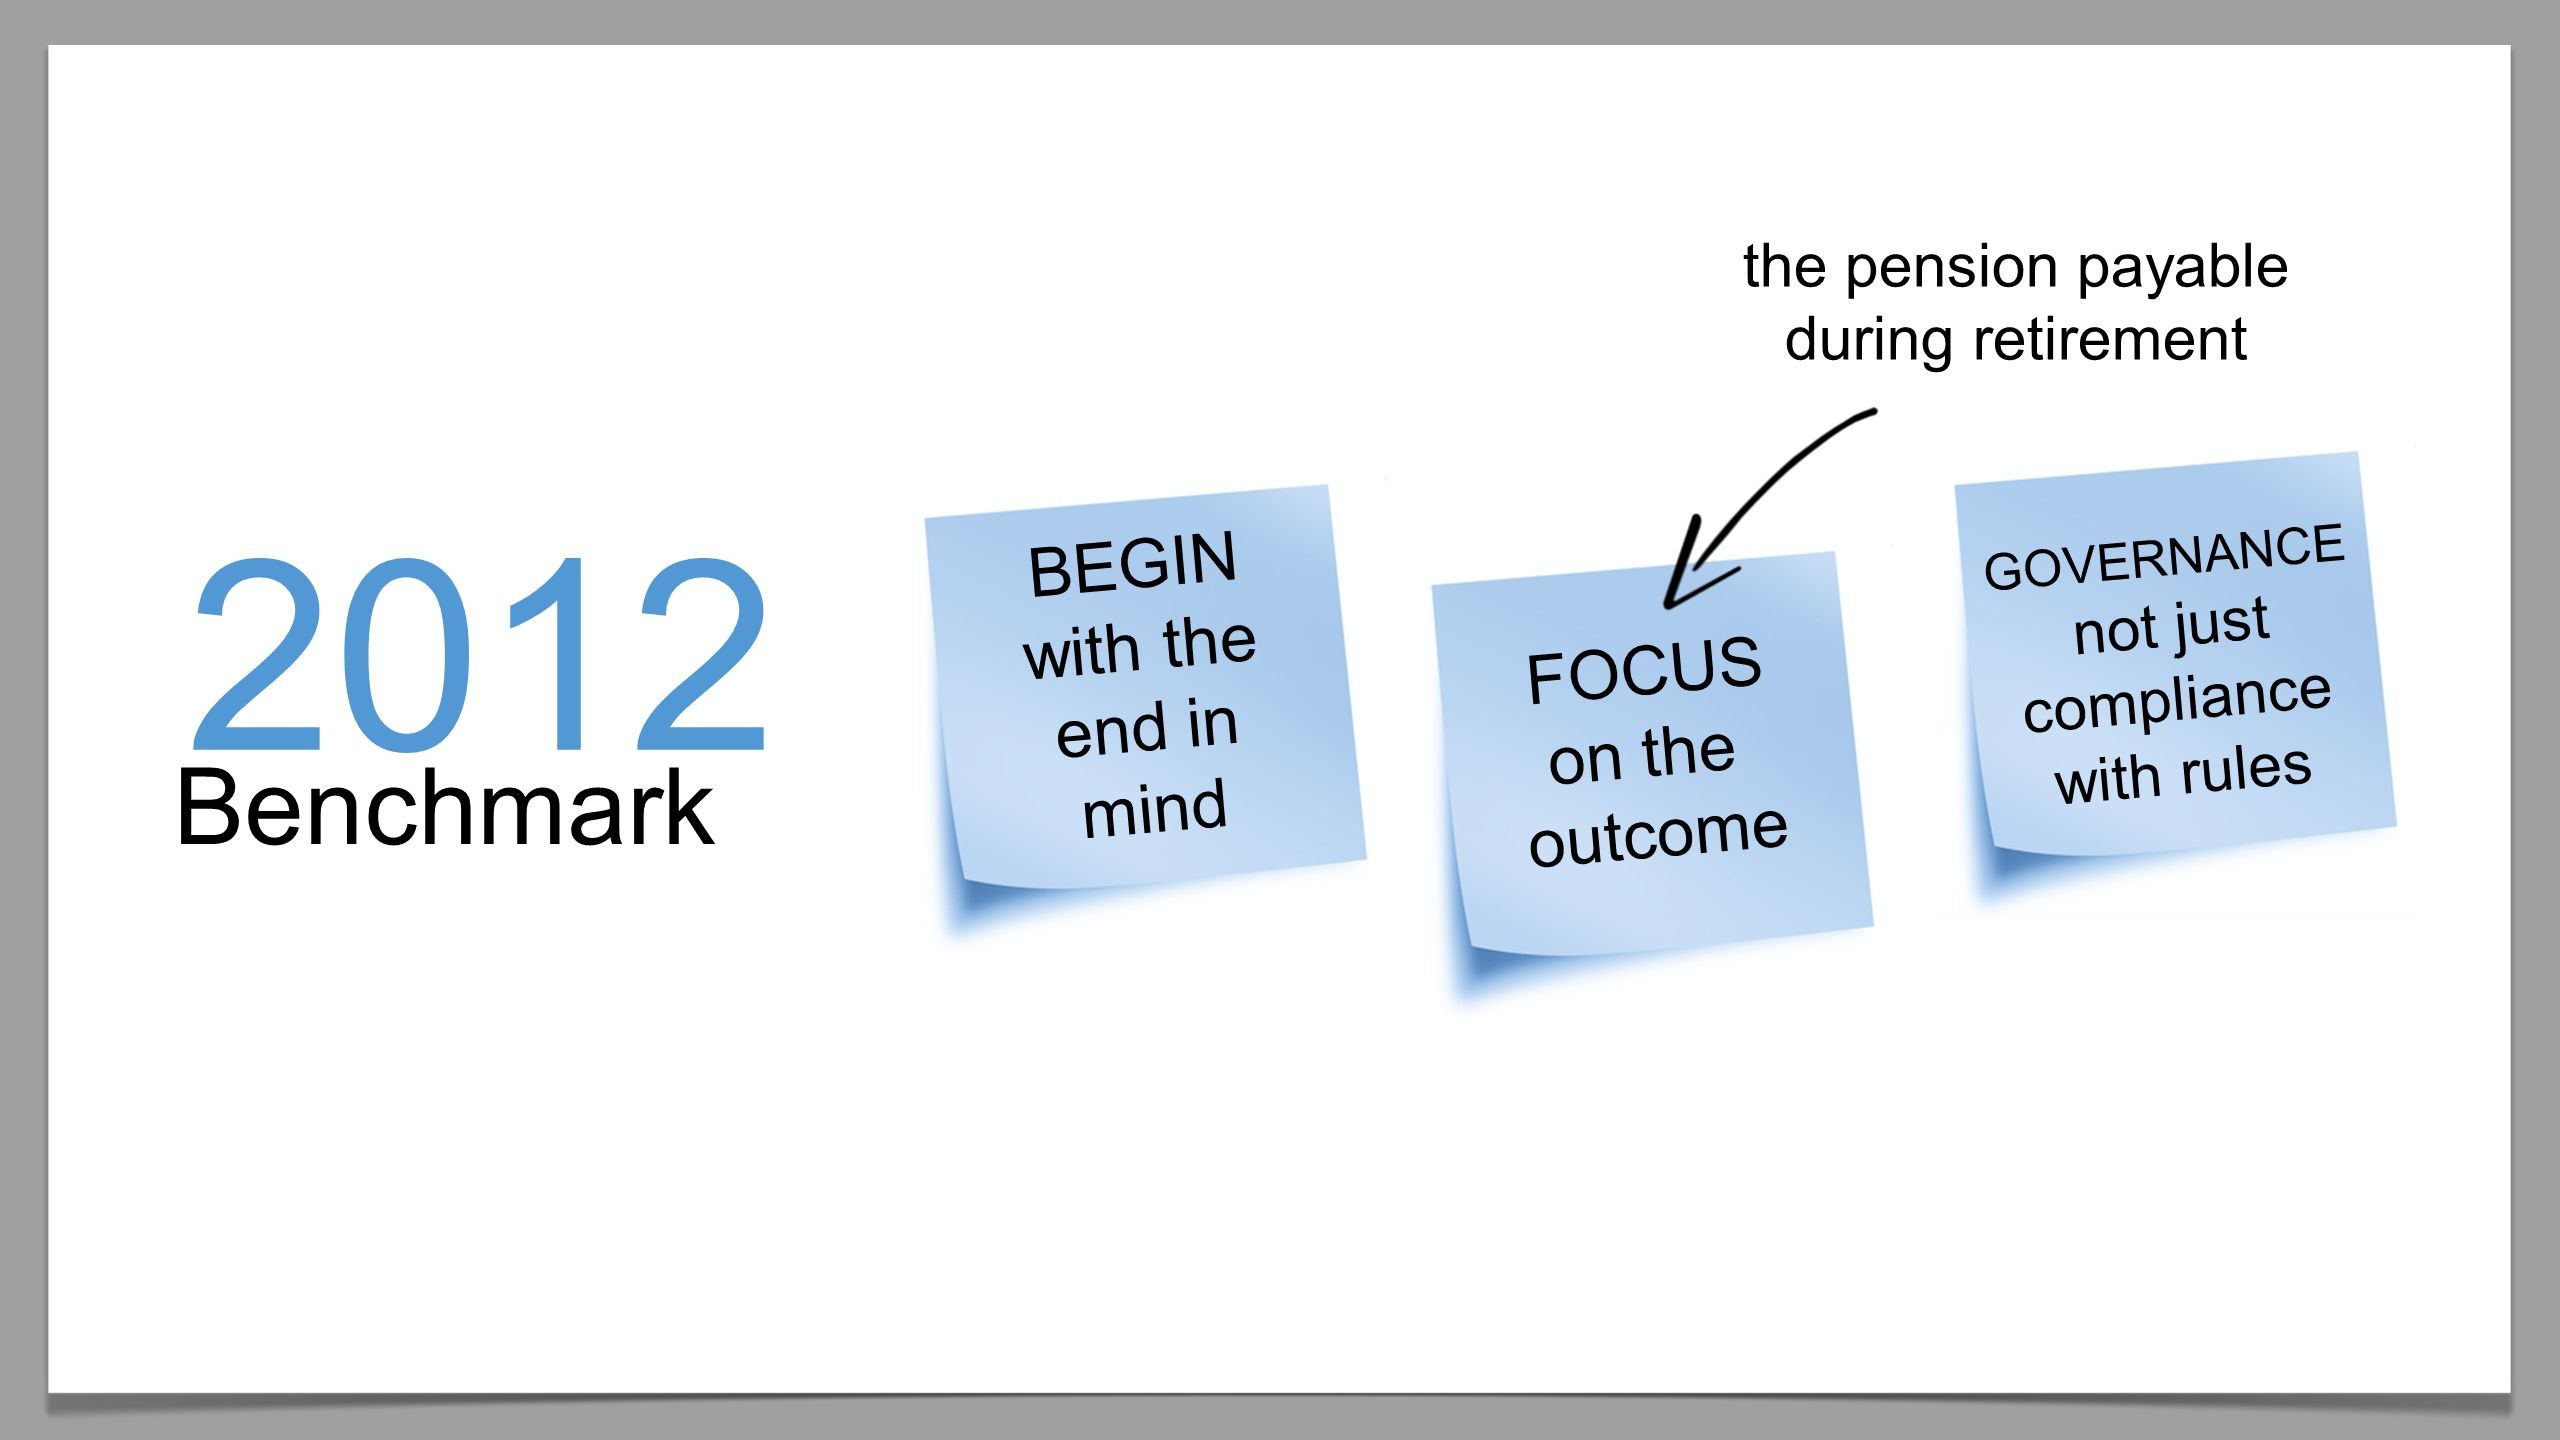 Benchmark 2012 BEGIN with the end in mind FOCUS on the outcome GOVERNANCE not just compliance with rules the pension payable during retirement